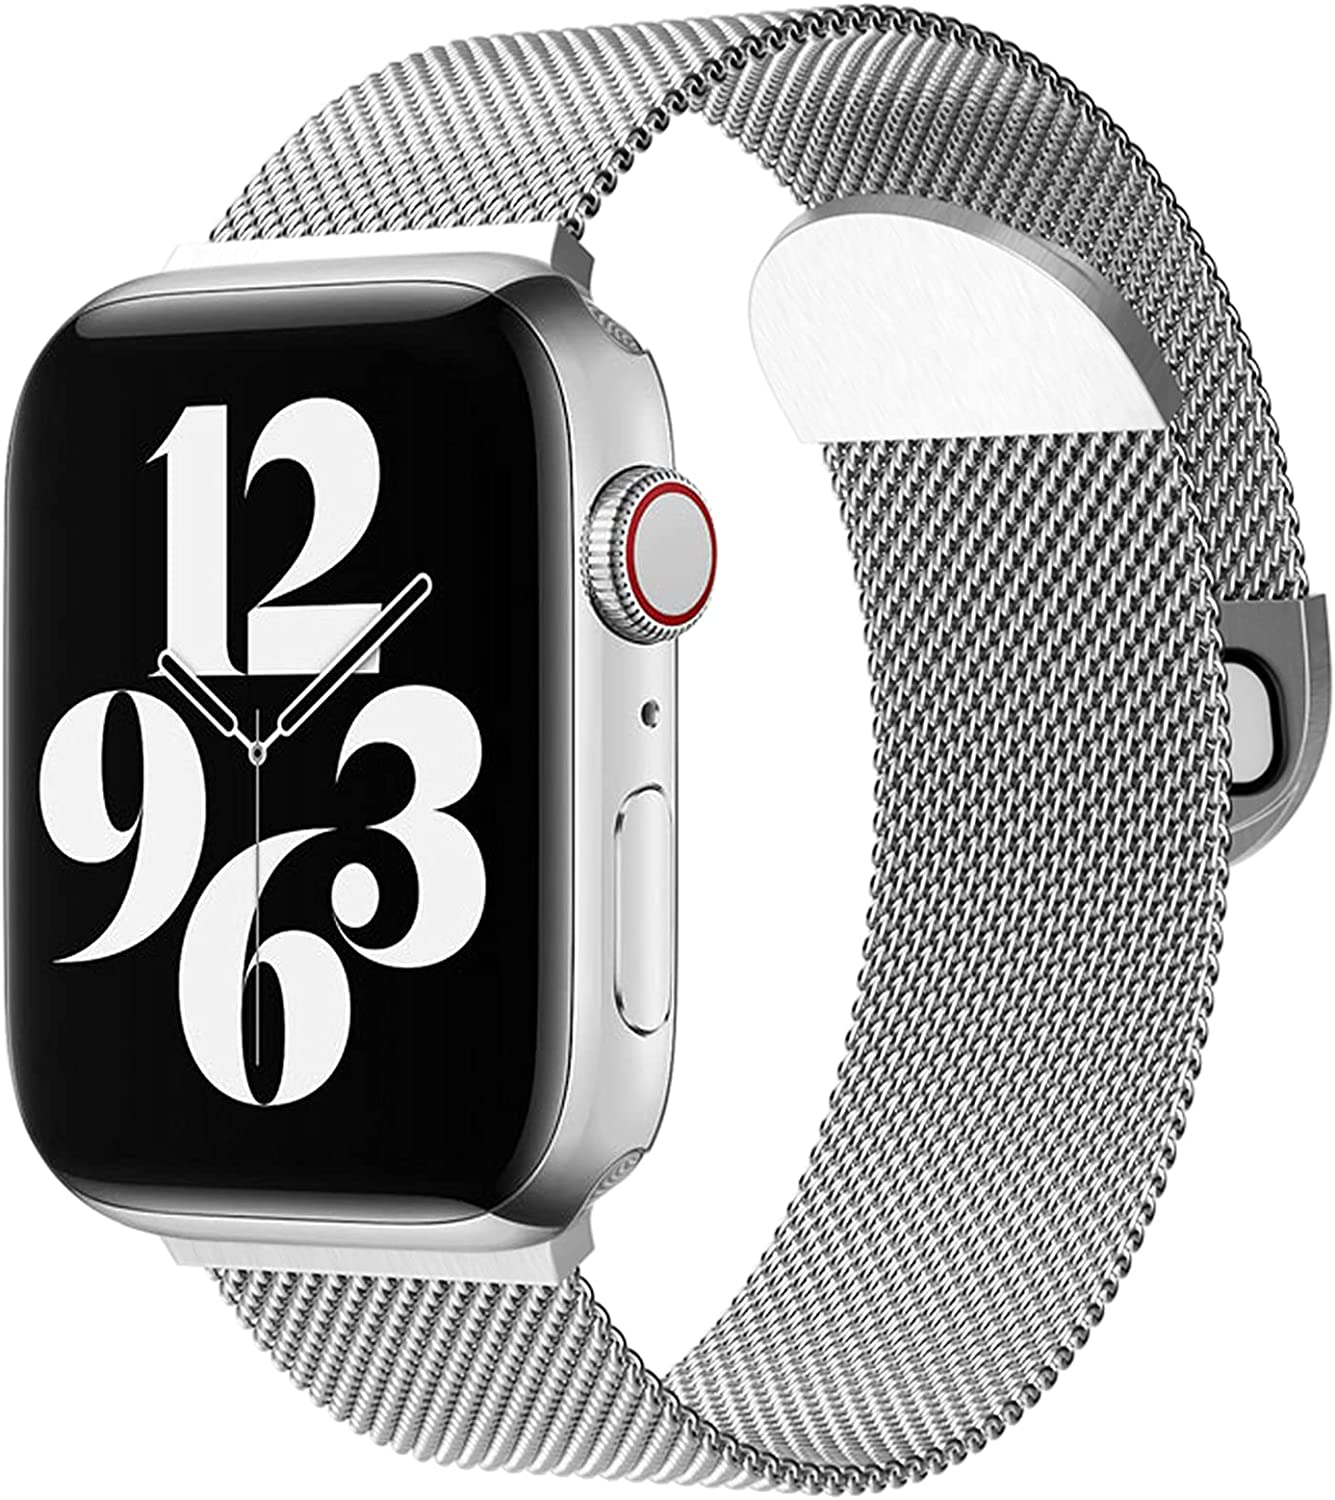 Metal Band Mesh Stanless Steel Magntic Closure Compatible with Apple Watch Band 38mm 40mm 42mm 44mm, Sport Watch Strap for Women Men Compatible for iWatch Series SE/6/5/4/3/2/1